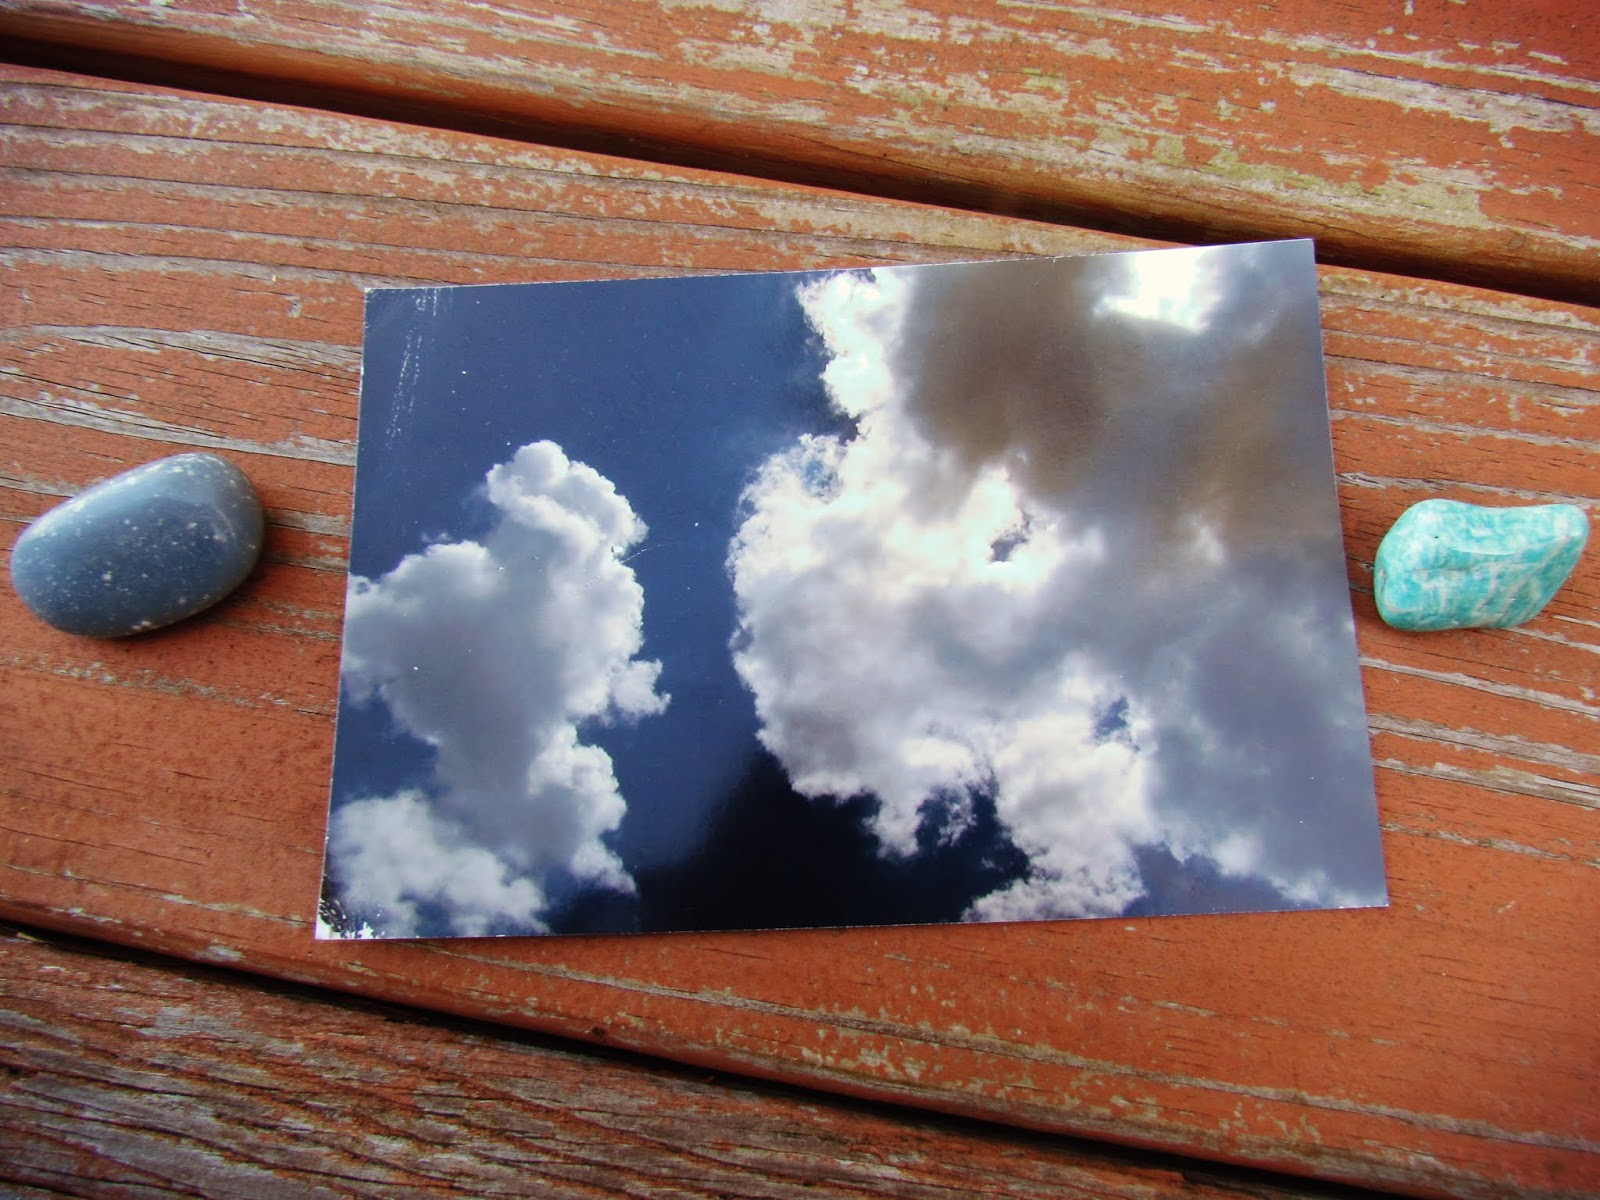 A flat lay with a cloud photograph, two gemstones, and a wooden plank background in mother nature